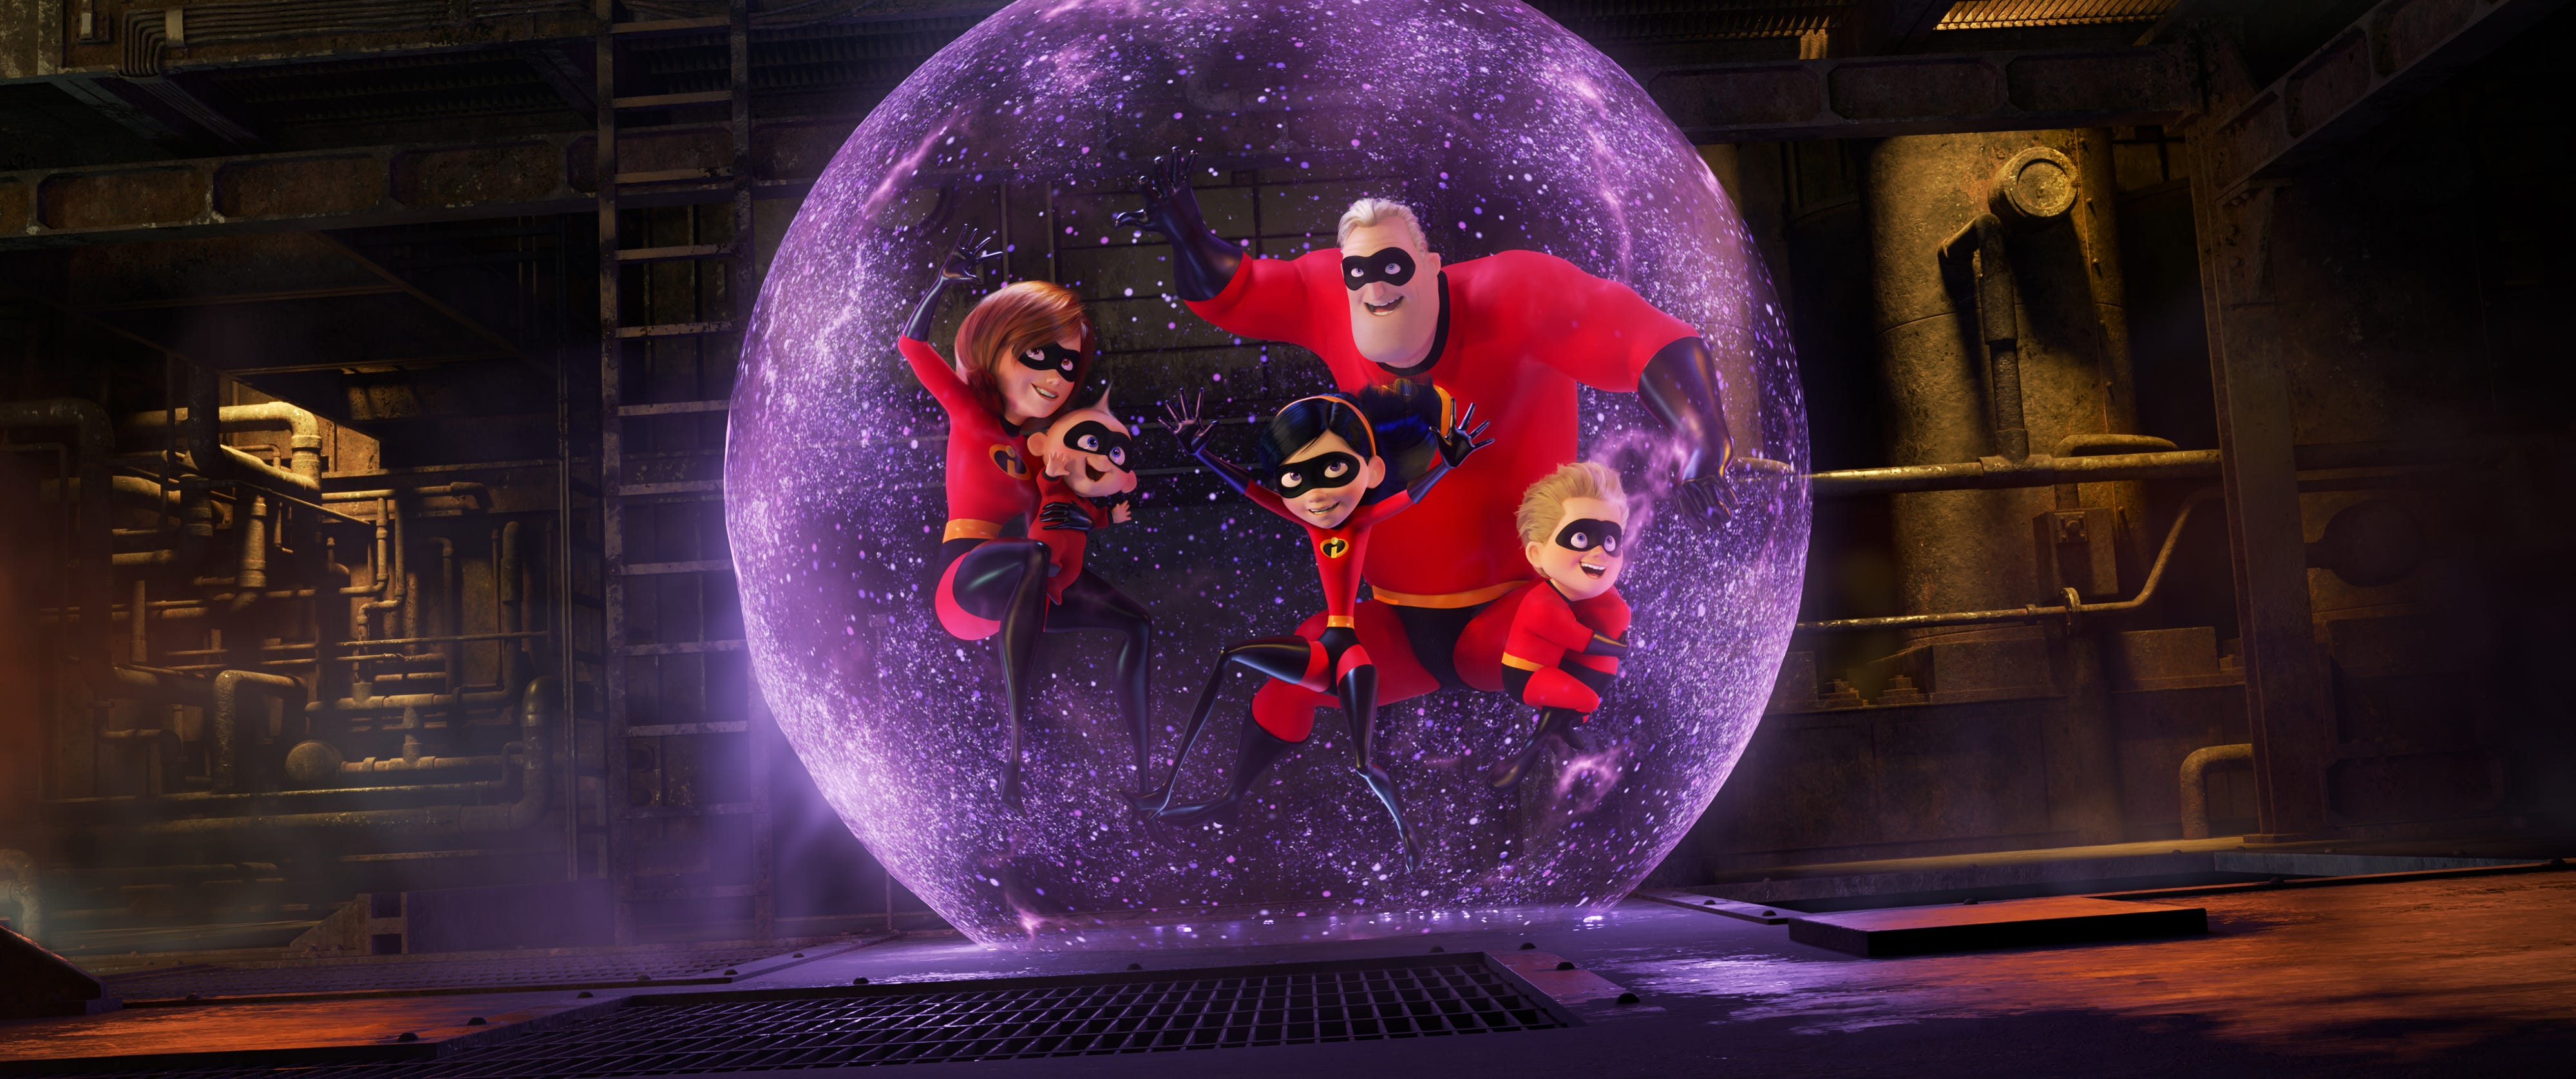 'Incredibles 2' features the return of Pixar's superhero family